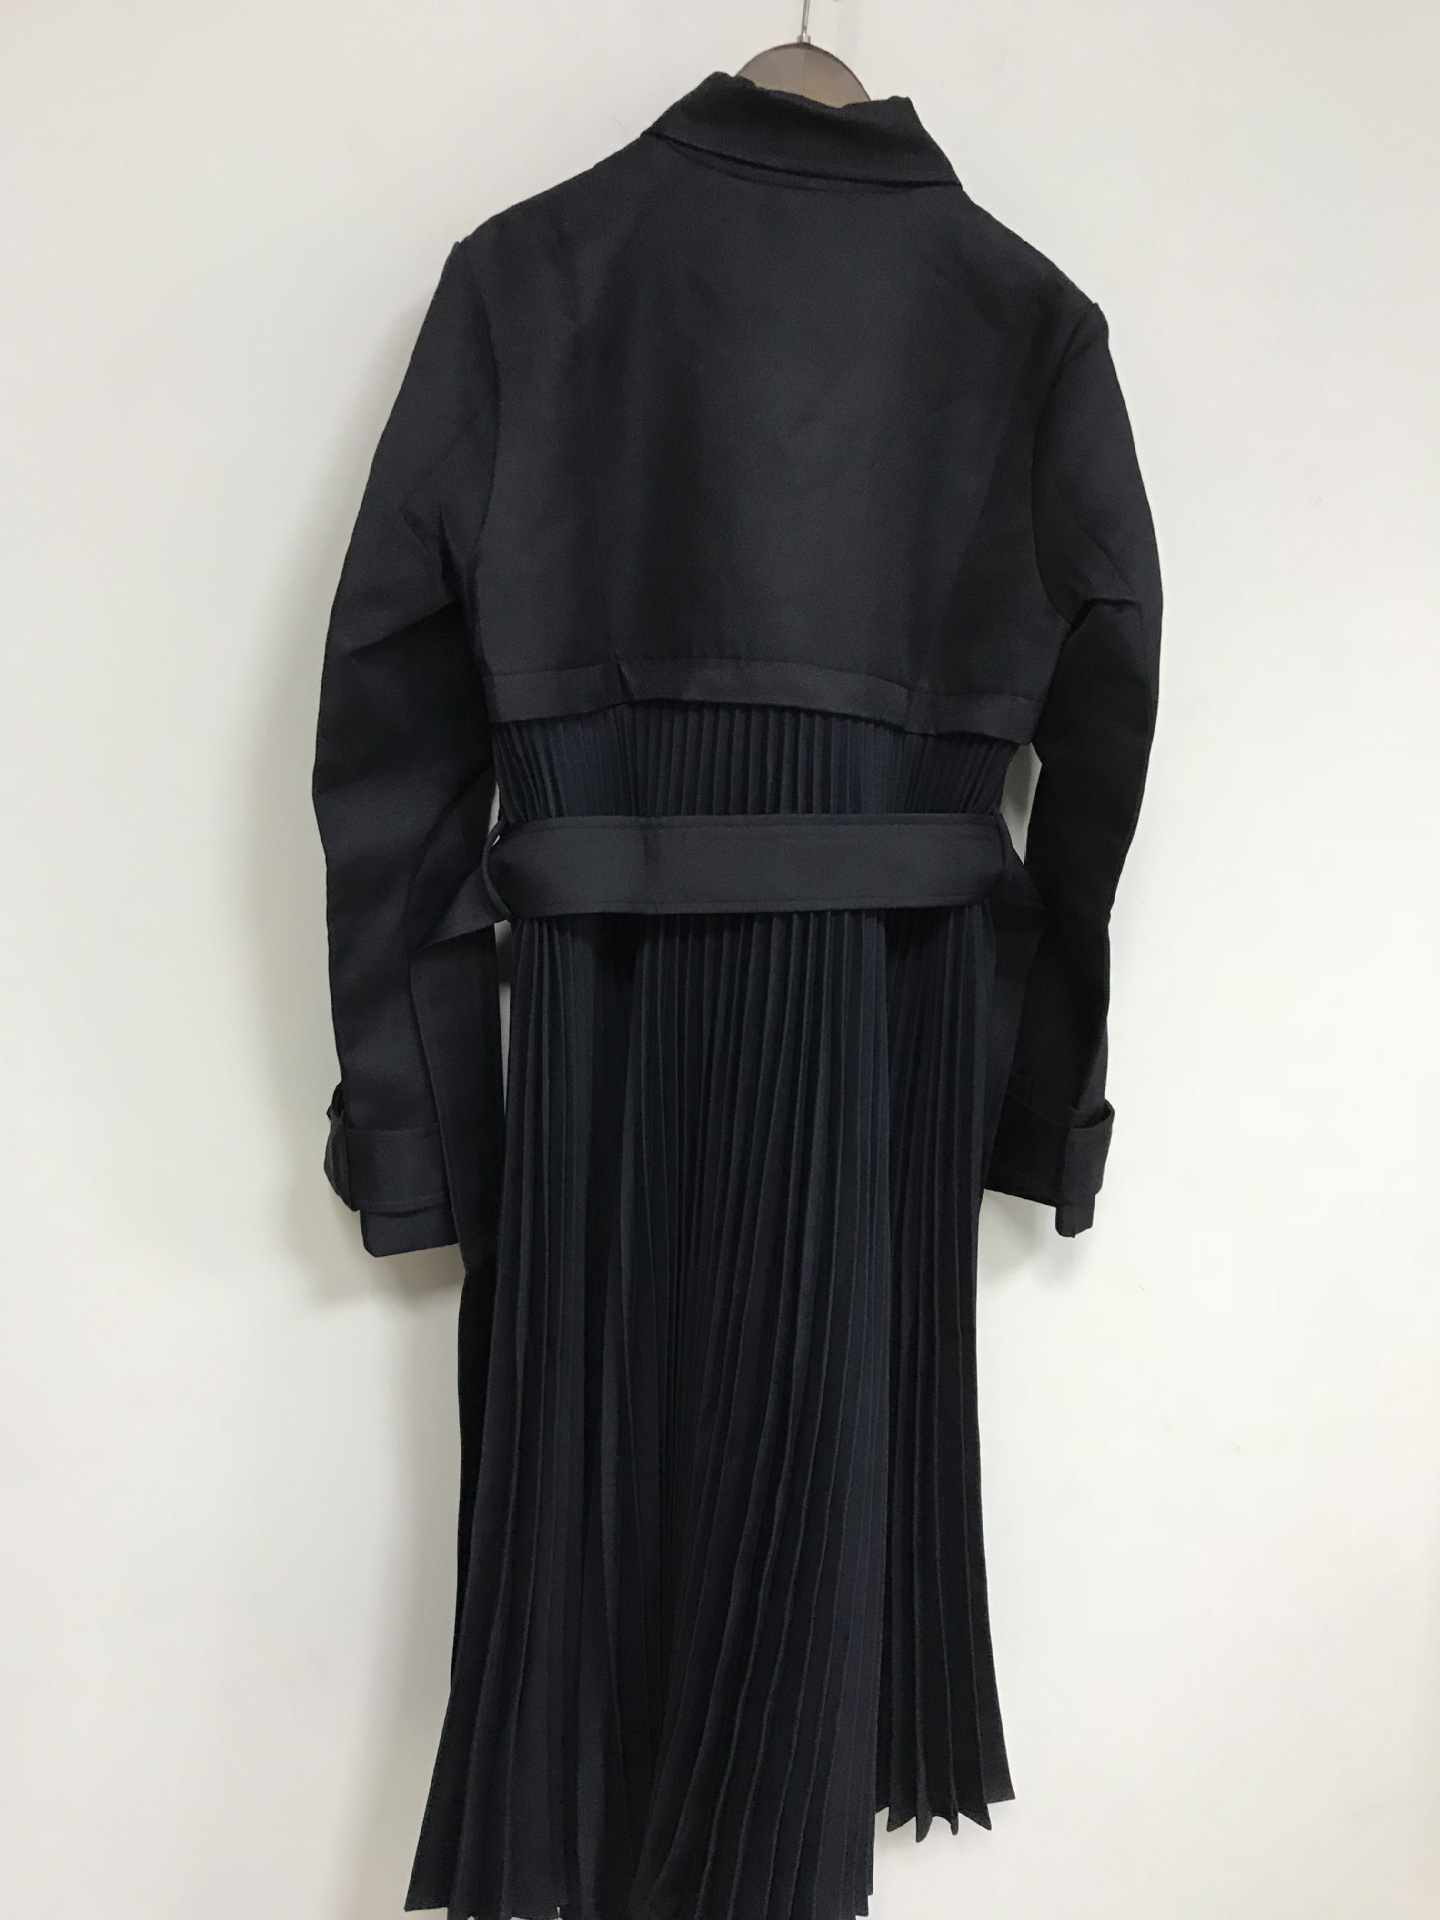 Image 4 - Women Trench 2019 Autumn and Winter New Temperament Pleated Stitching Tie Bow Windbreaker JacketTrench